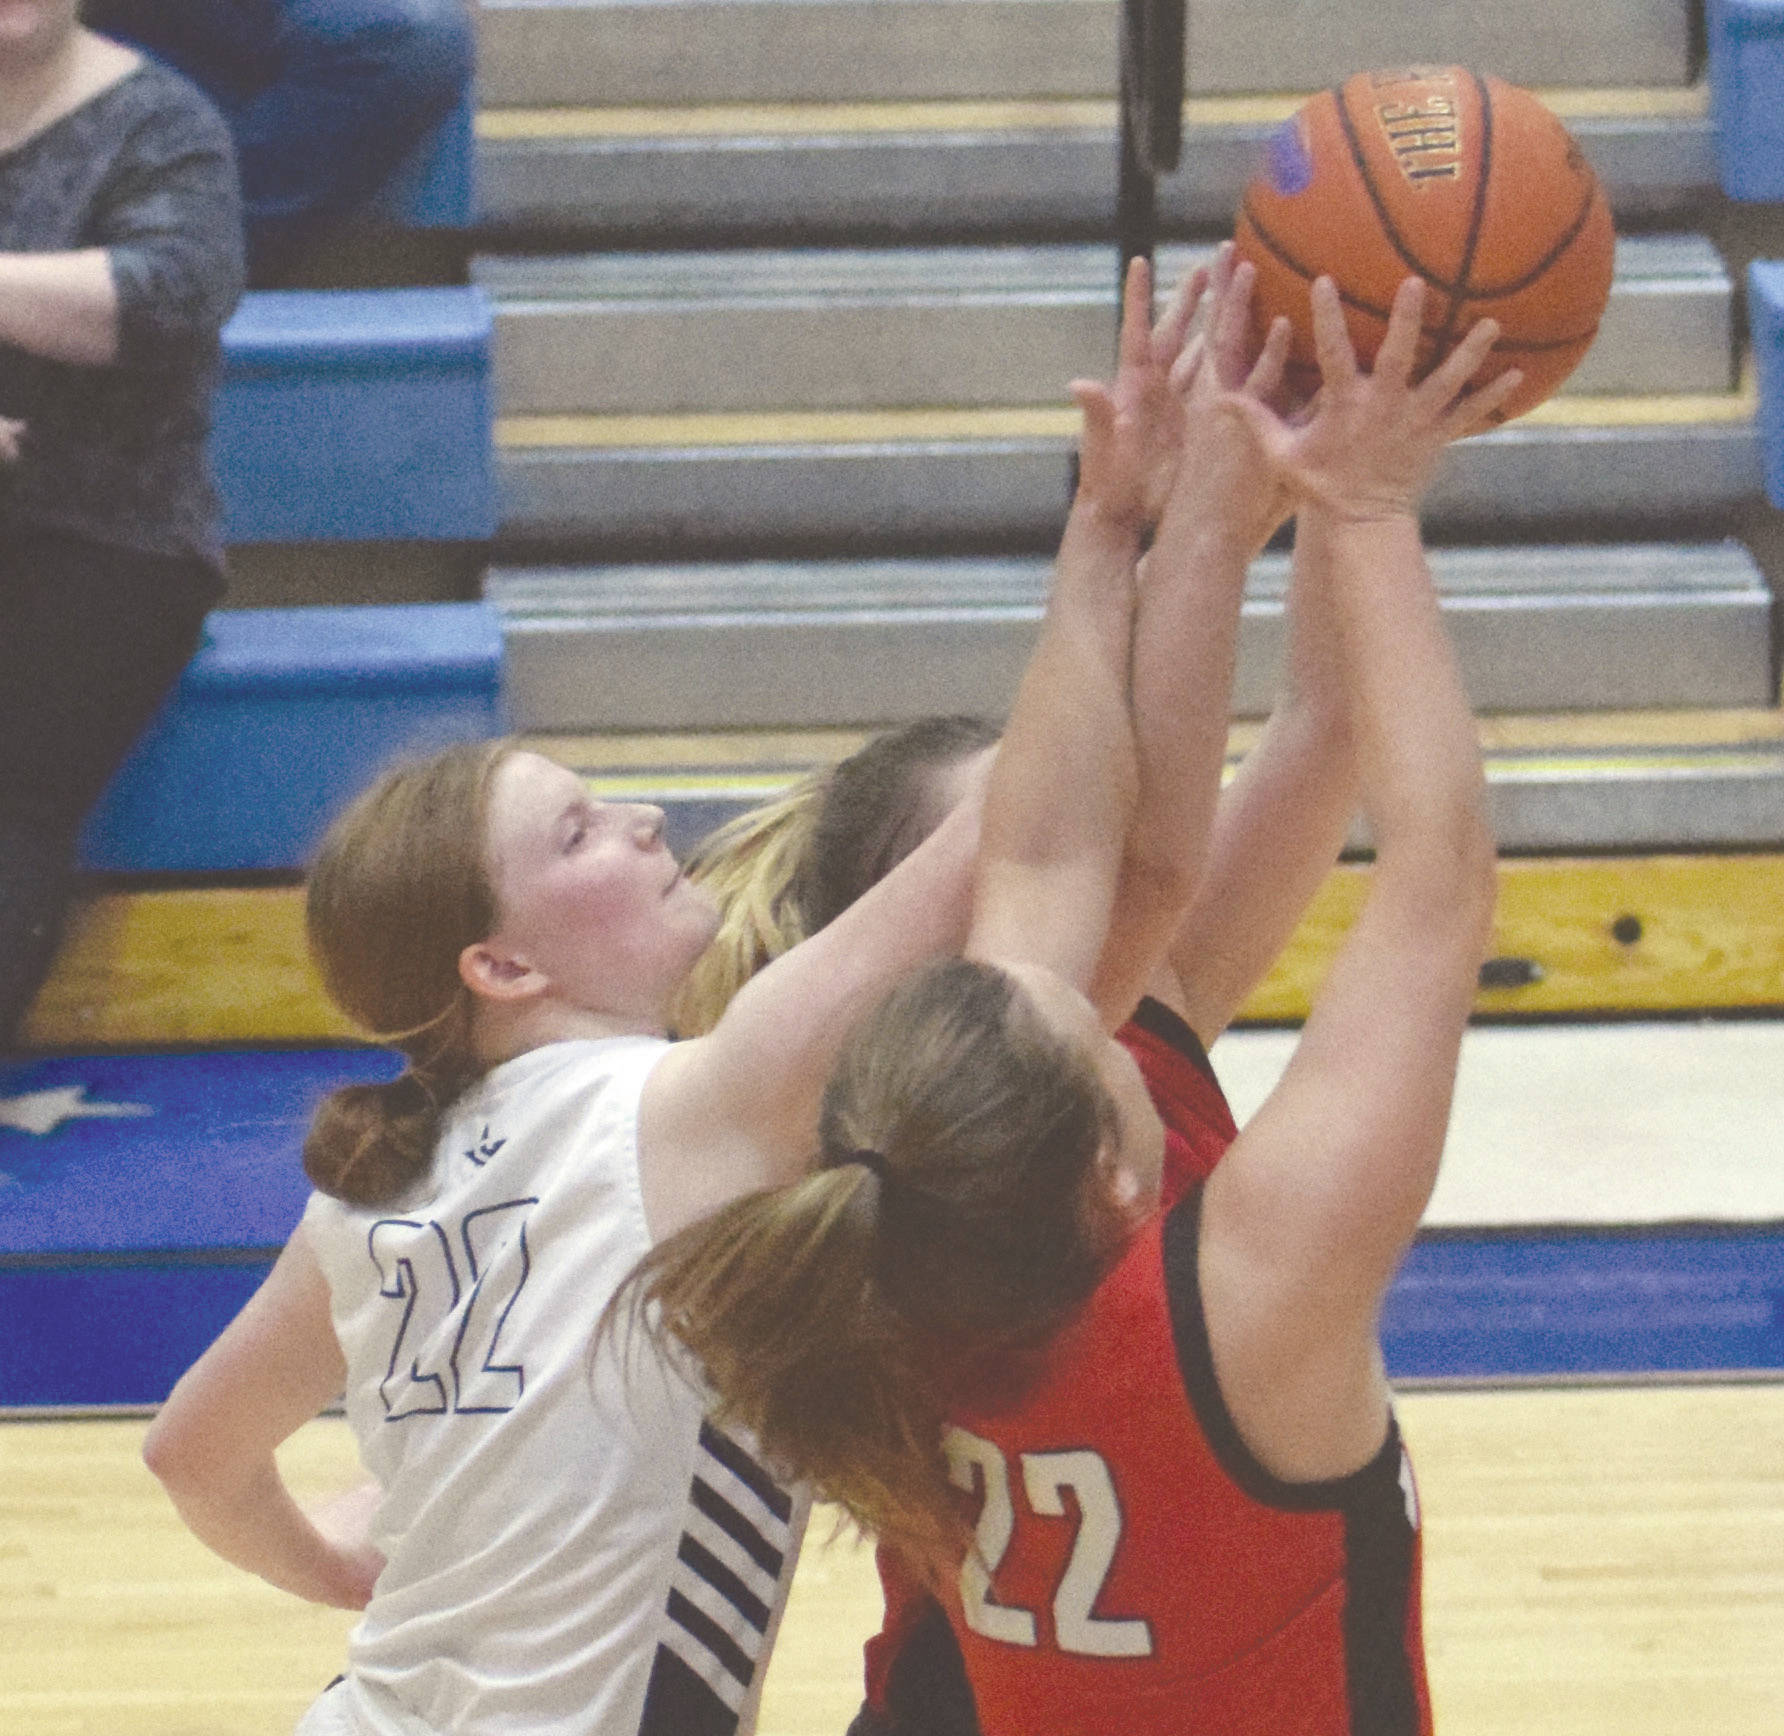 Soldotna's Kianna Holland battles with Kenai's Jaiden Streiff for the rebound Saturday, Feb. 29, 2020, at Soldotna High School in Soldotna, Alaska. (Photo by Jeff Helminiak/Peninsula Clarion)